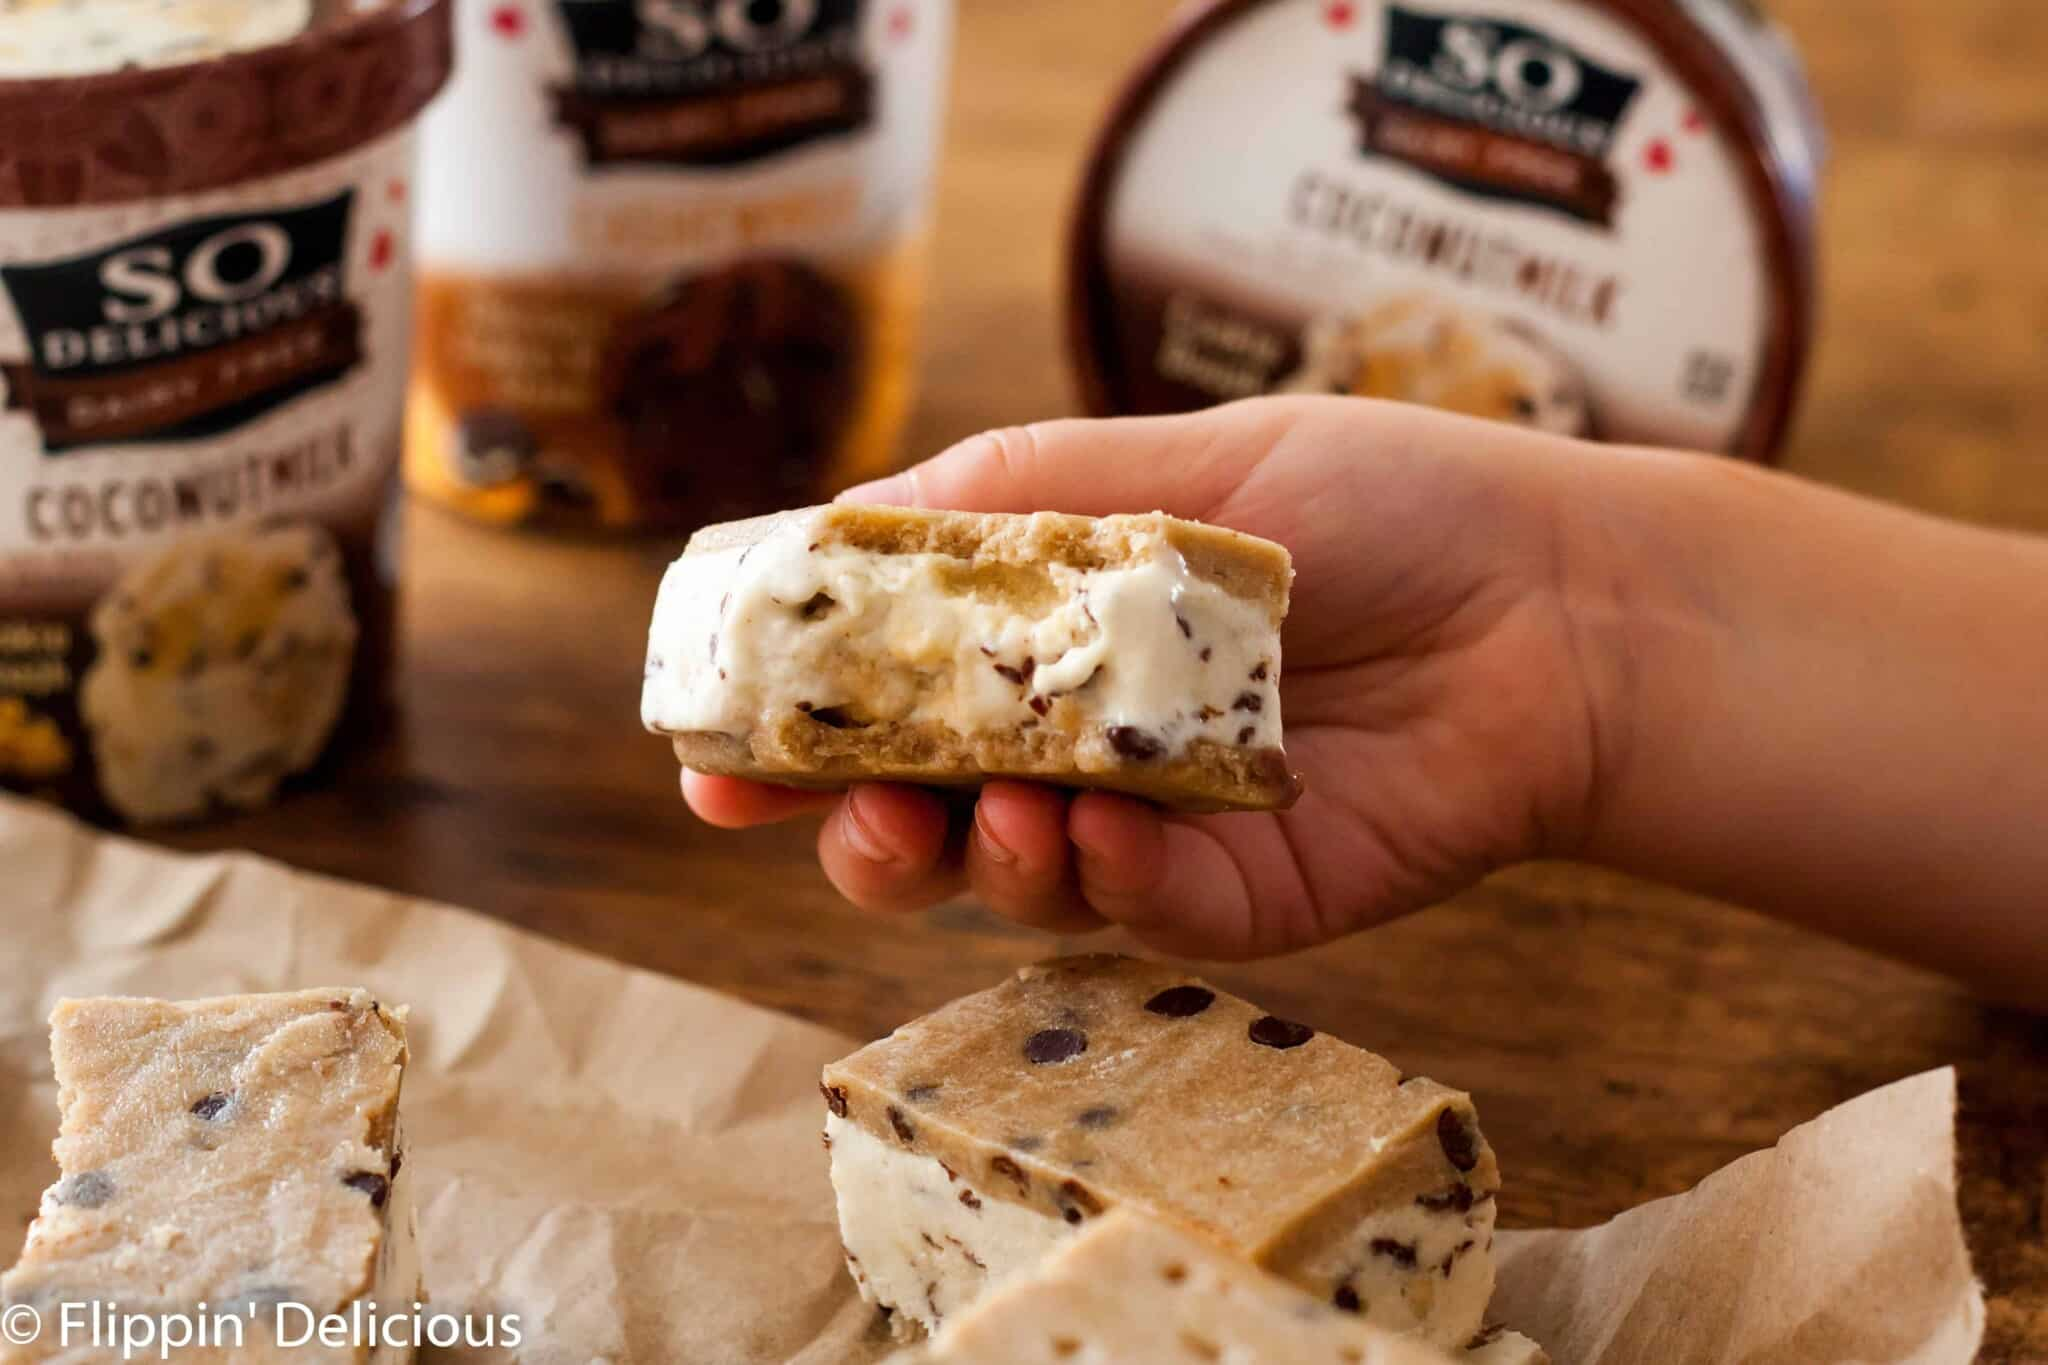 Gluten-free cookie dough ice cream sandwiches will make any cookie-dough-fan swoon. They are dairy-free and vegan, so the whole family can enjoy them.